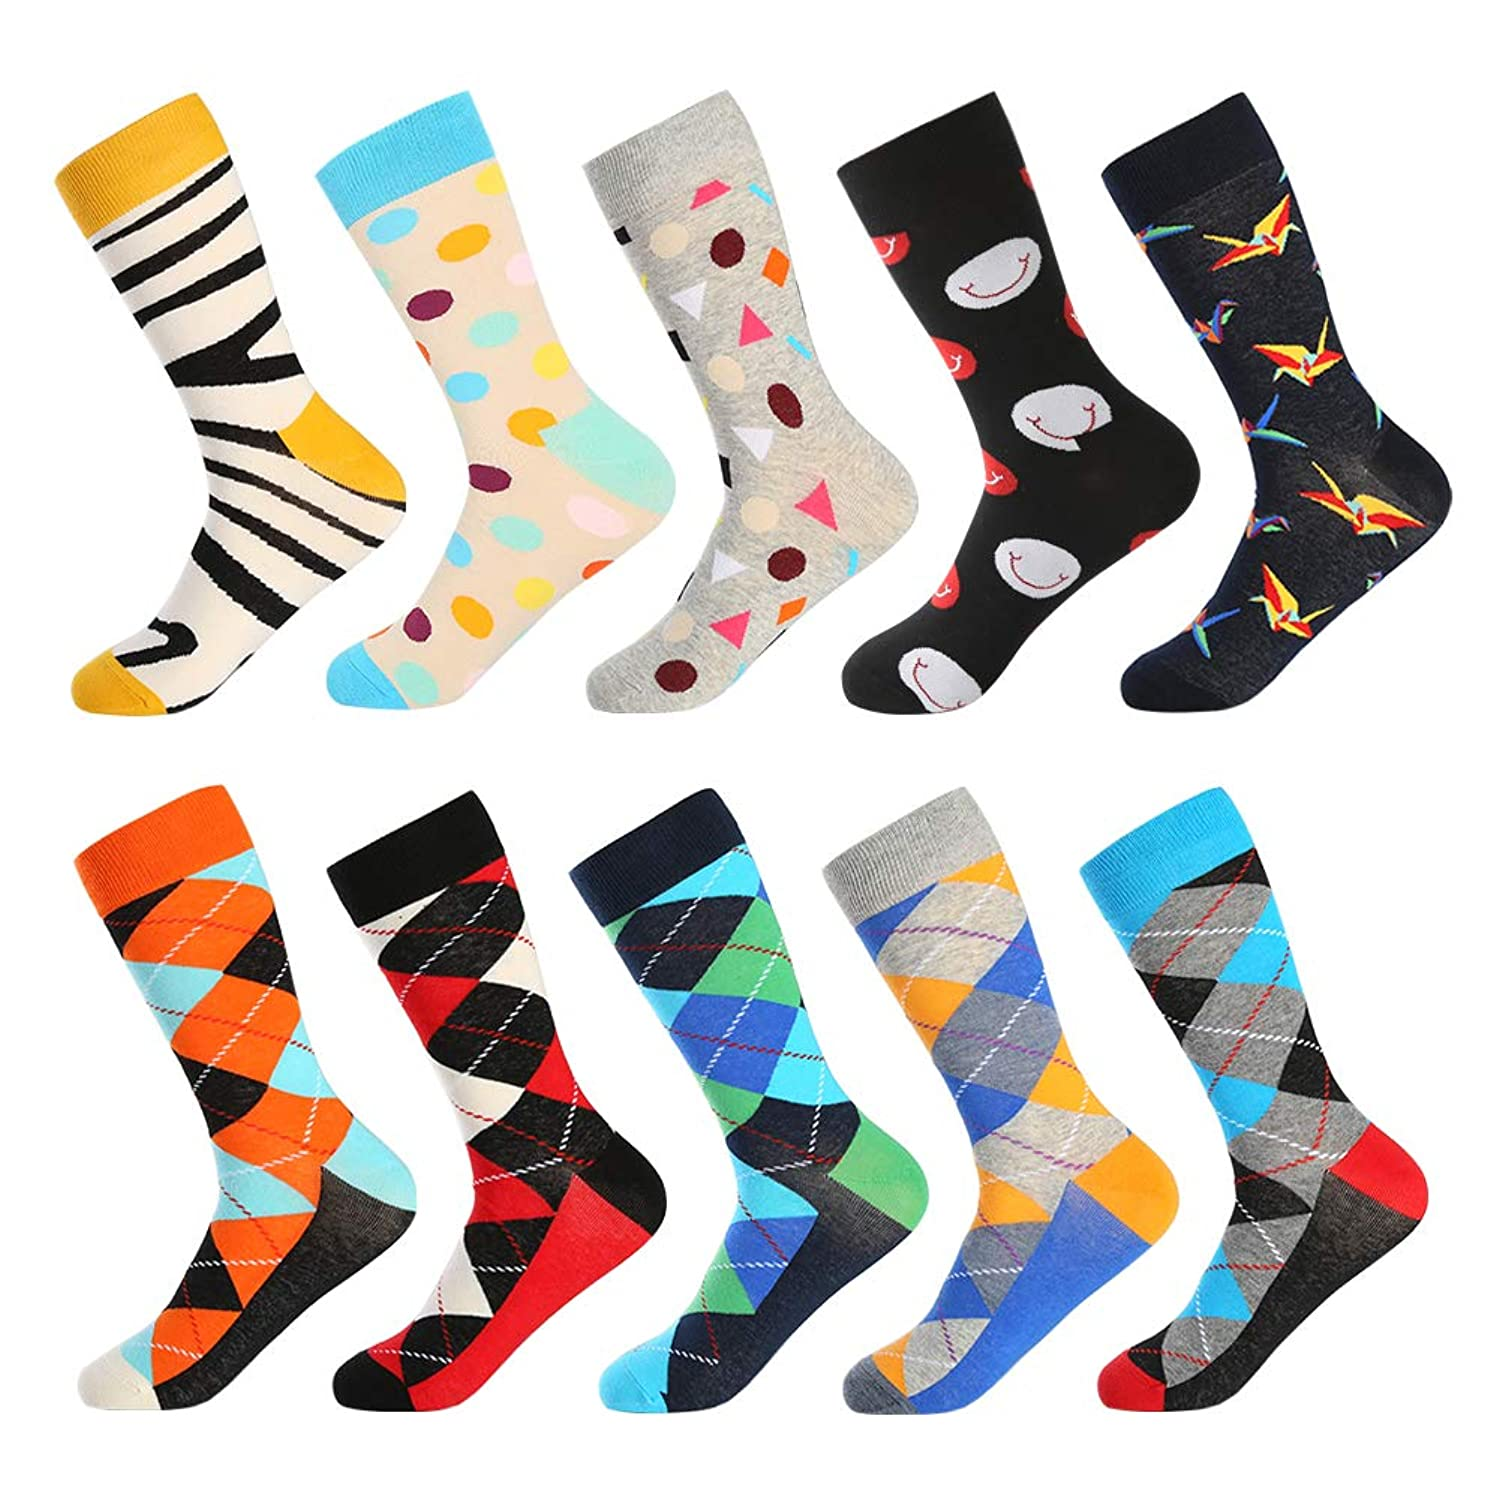 Brand Men Socks Funny Novelty Cotton Amazing Wedding Dress Gift High Quality Personality Colorful Happy Socks 14 Soft And Antislippery Underwear & Sleepwears